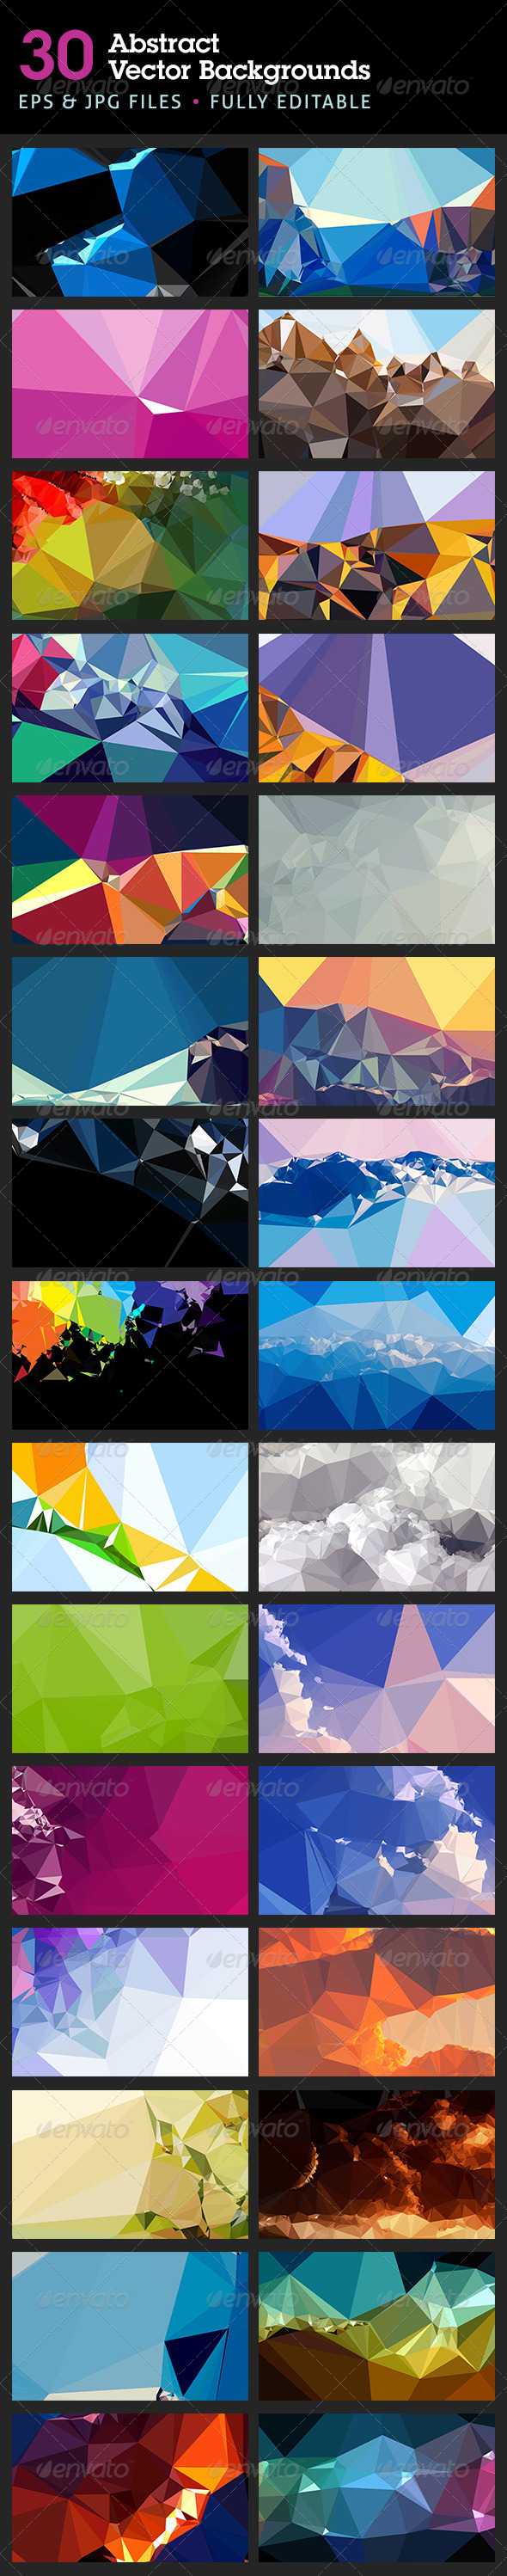 Abstract Backgrounds in Vector Format (Backgrounds) - GFX Hell